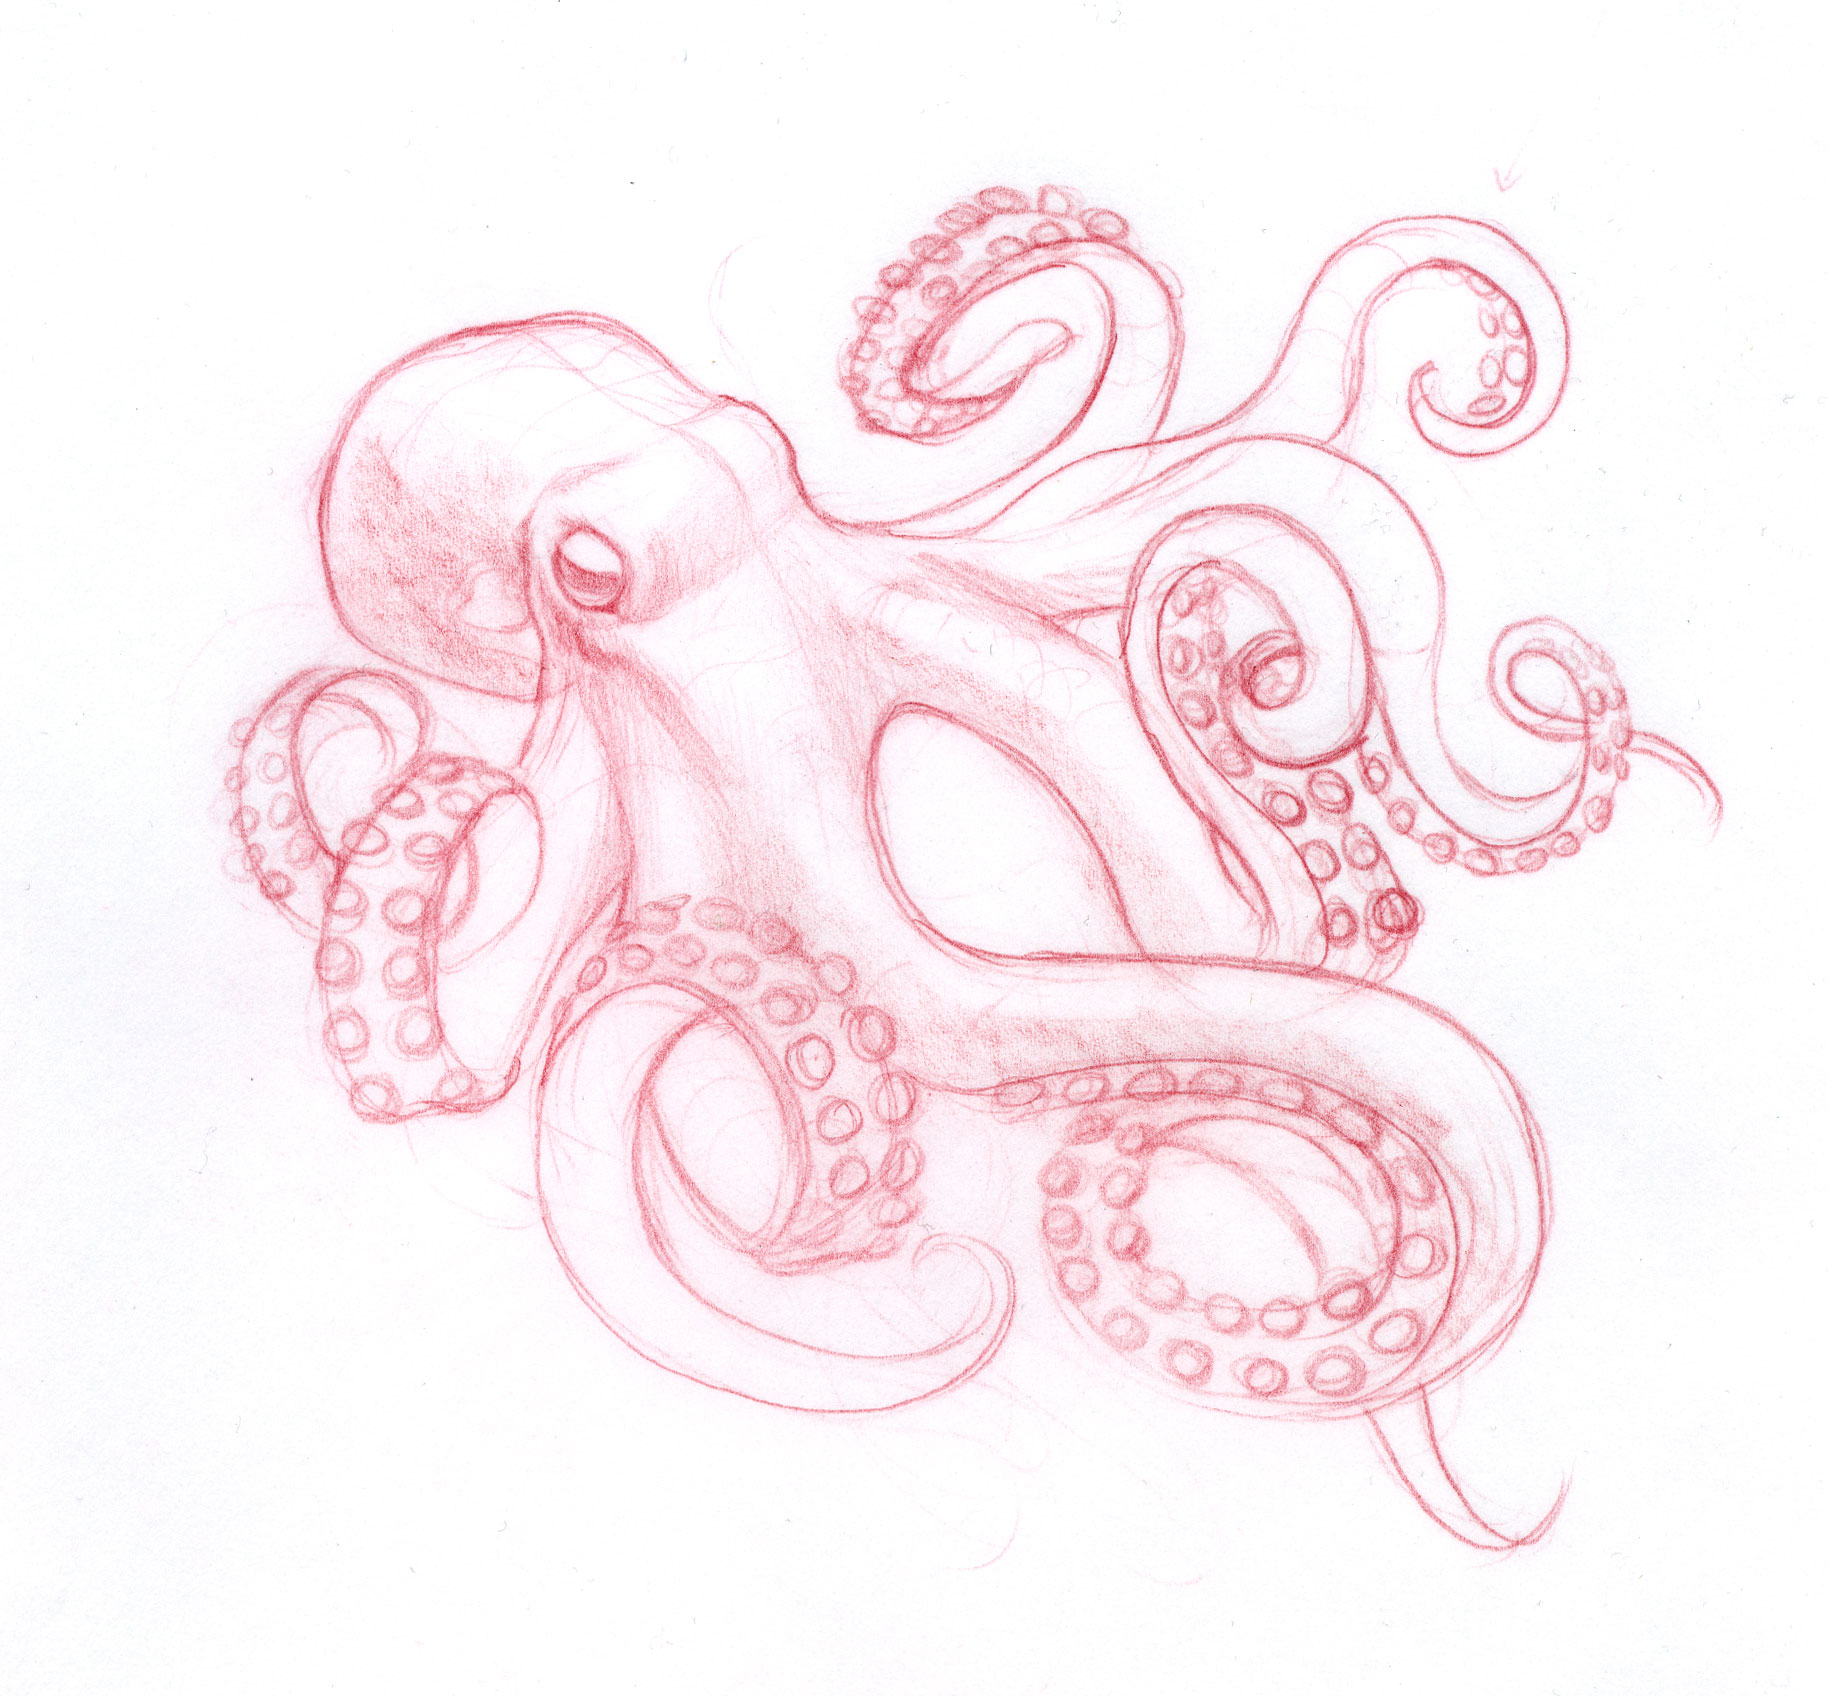 Drawn tentacle traditional Me drawing Pinterest DrawingOctopus octopus